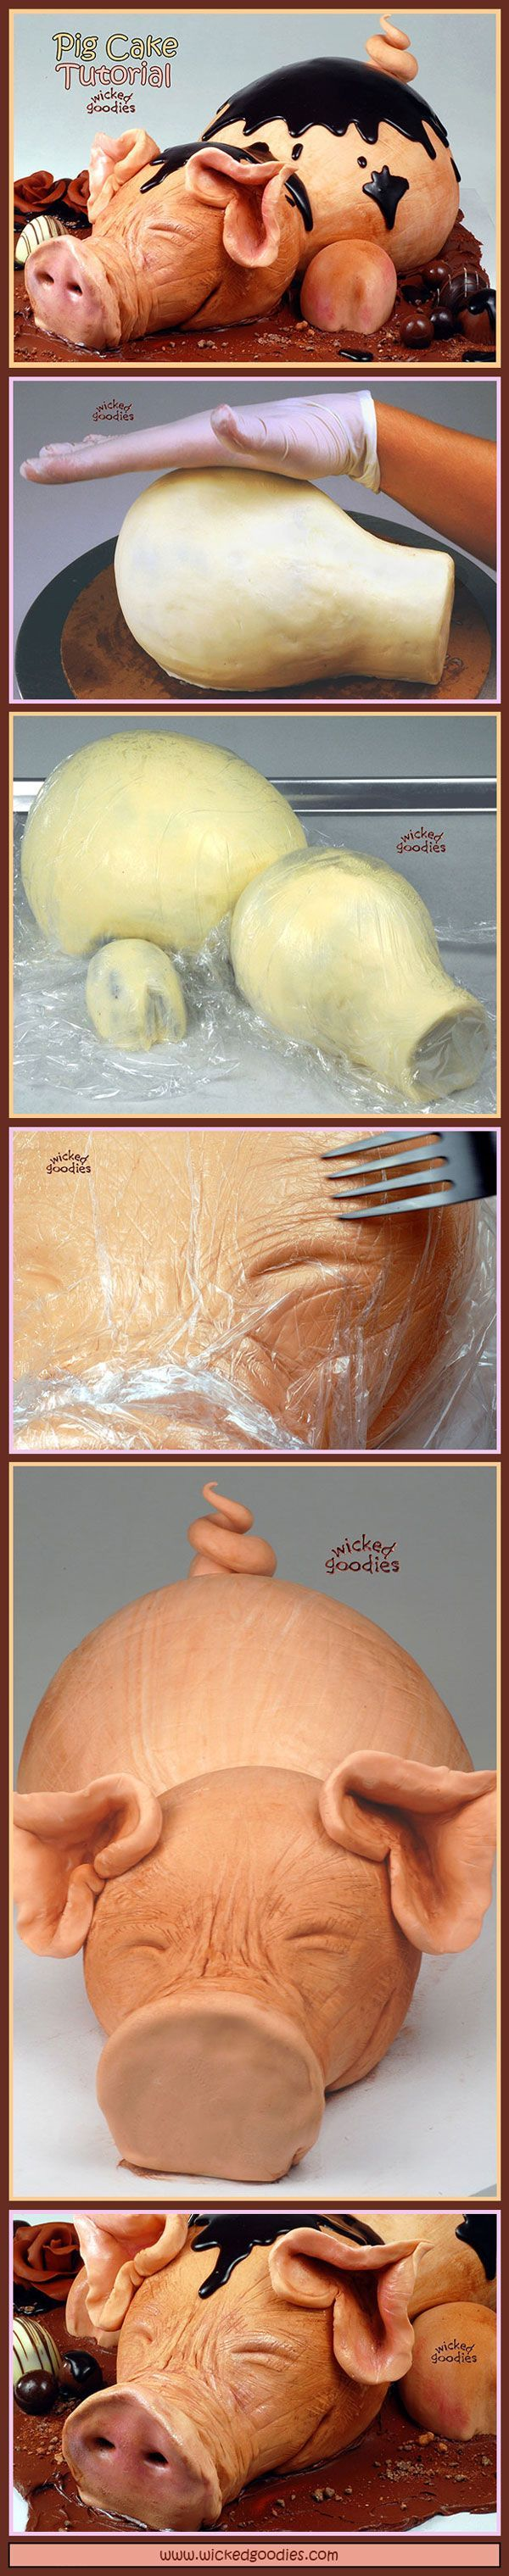 Pig Cake Tutorial by Wicked Goodies